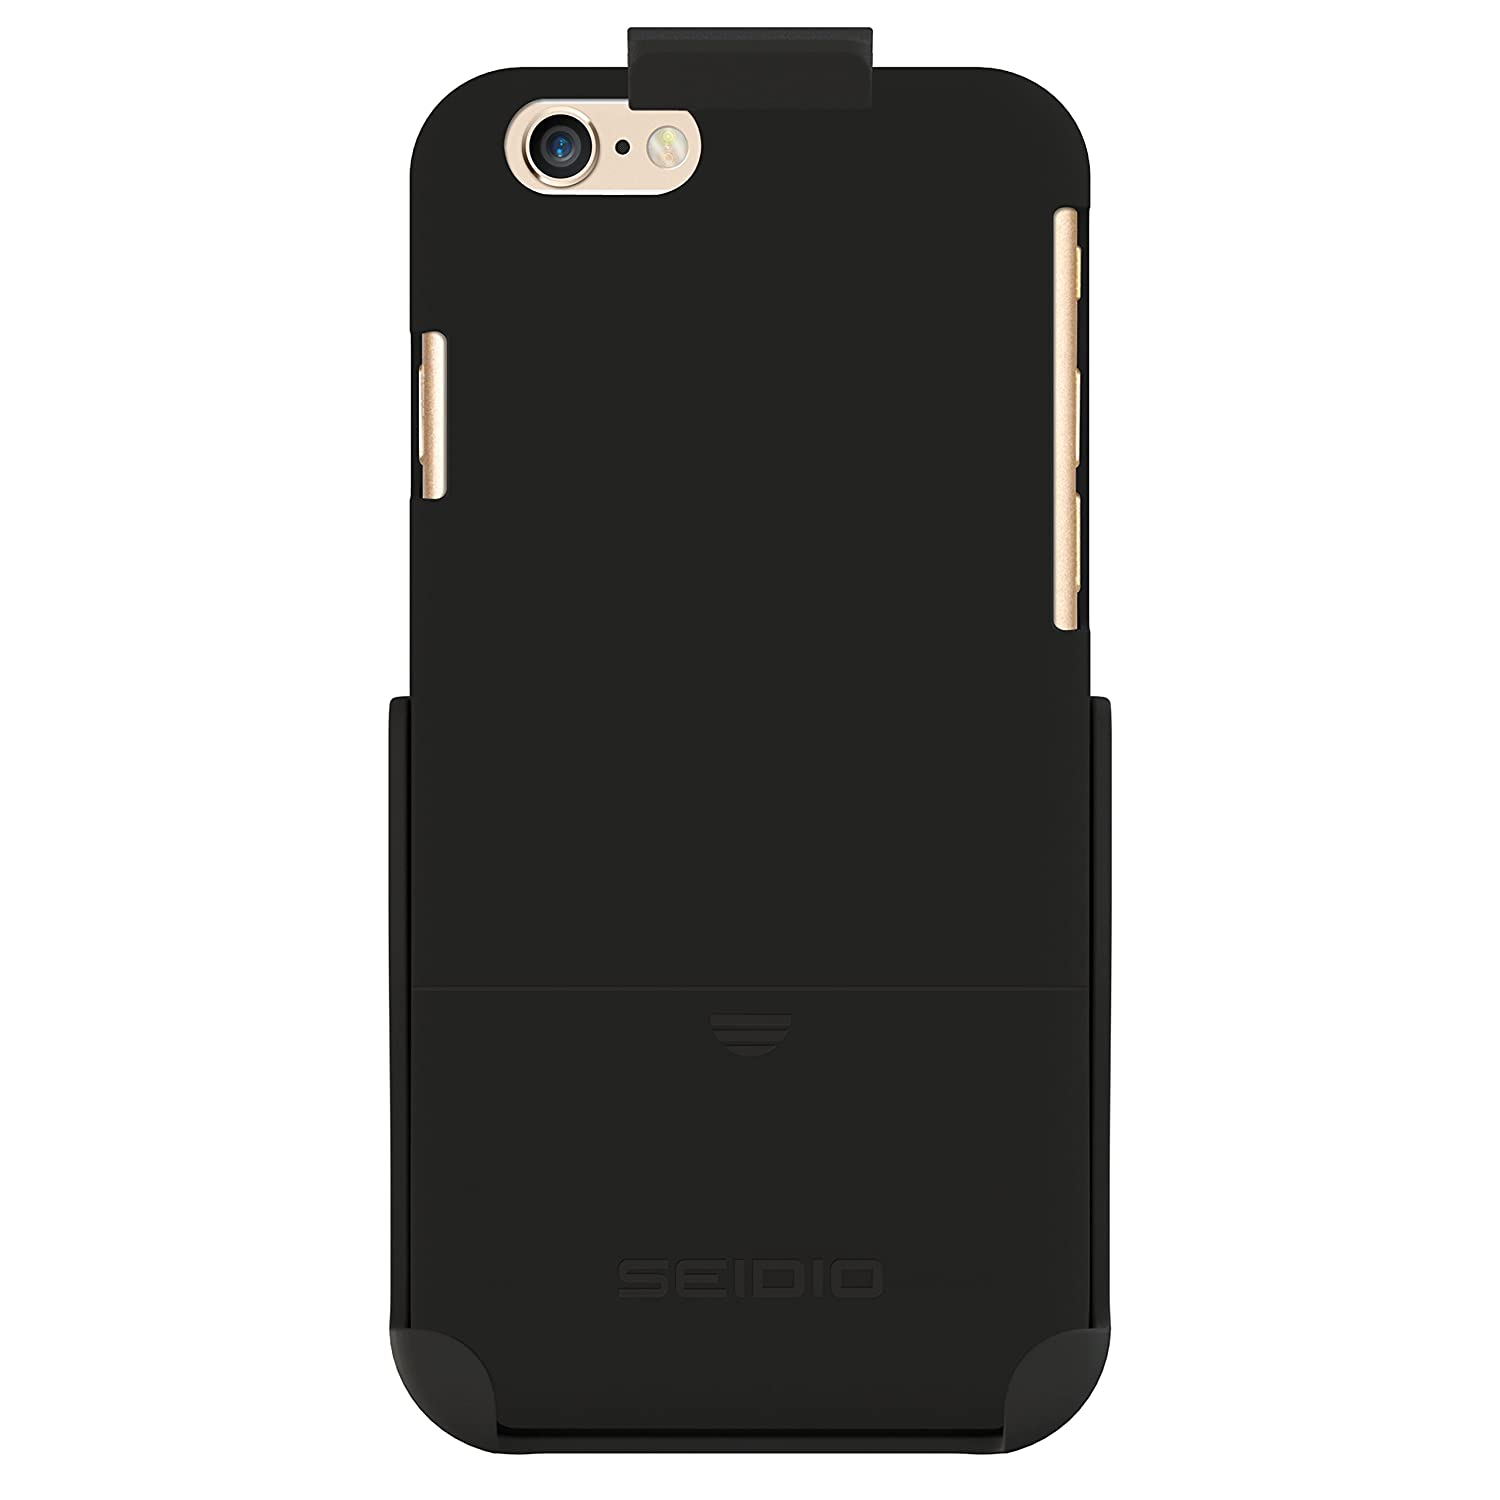 Seidio SURFACE Case & Belt-Clip Holster for iPhone 6 ONLY [Slim Protection] - Retail Packaging - Black